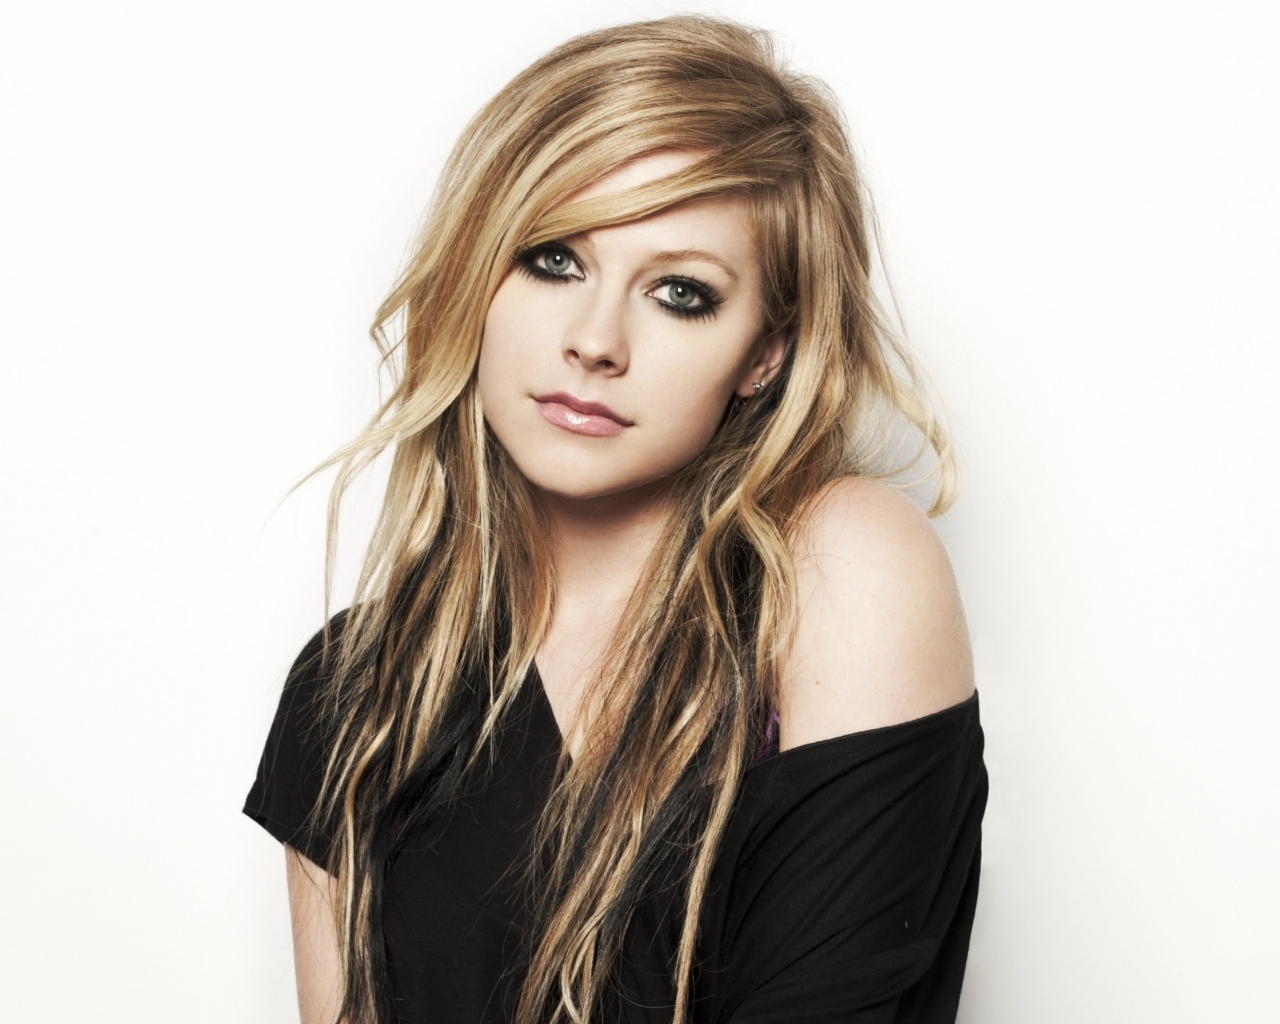 Avril Lavigne - Avril Lavigne Wallpaper (22661429) - Fanpop: http://www.fanpop.com/clubs/avril-lavigne/images/22661429/title/avril-lavigne-wallpaper